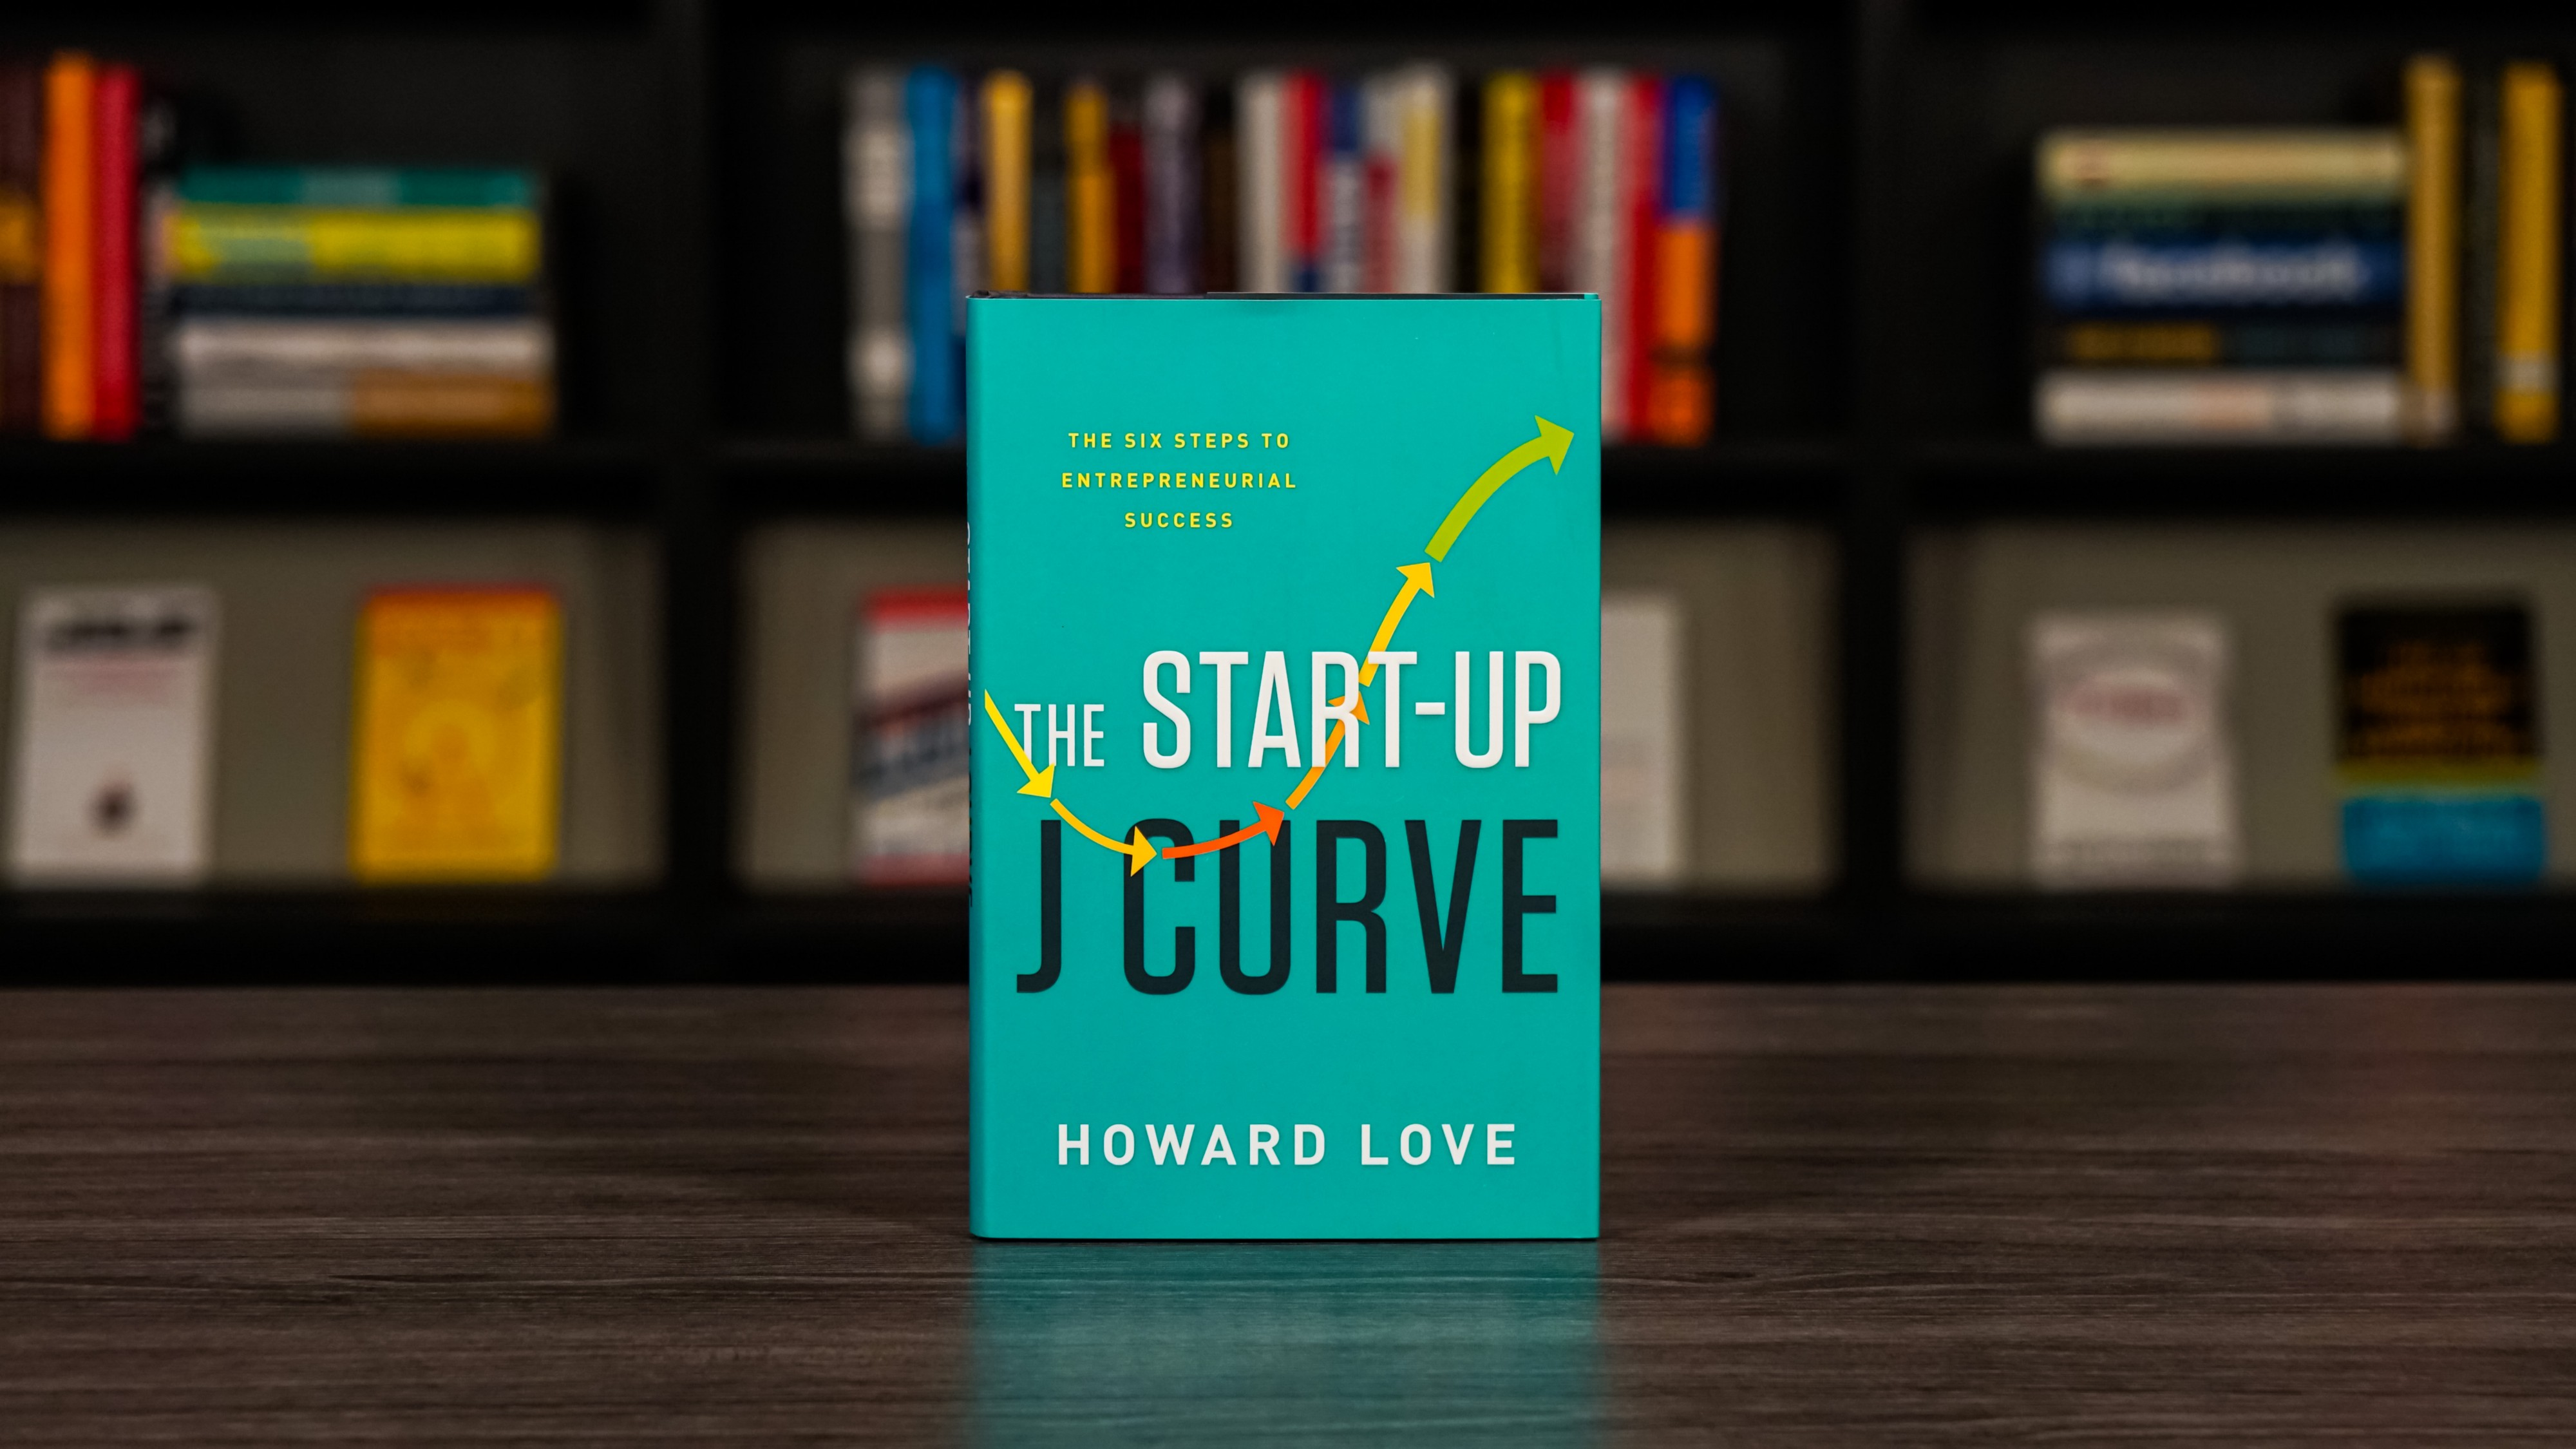 The Start-up J Curve by Howard Love